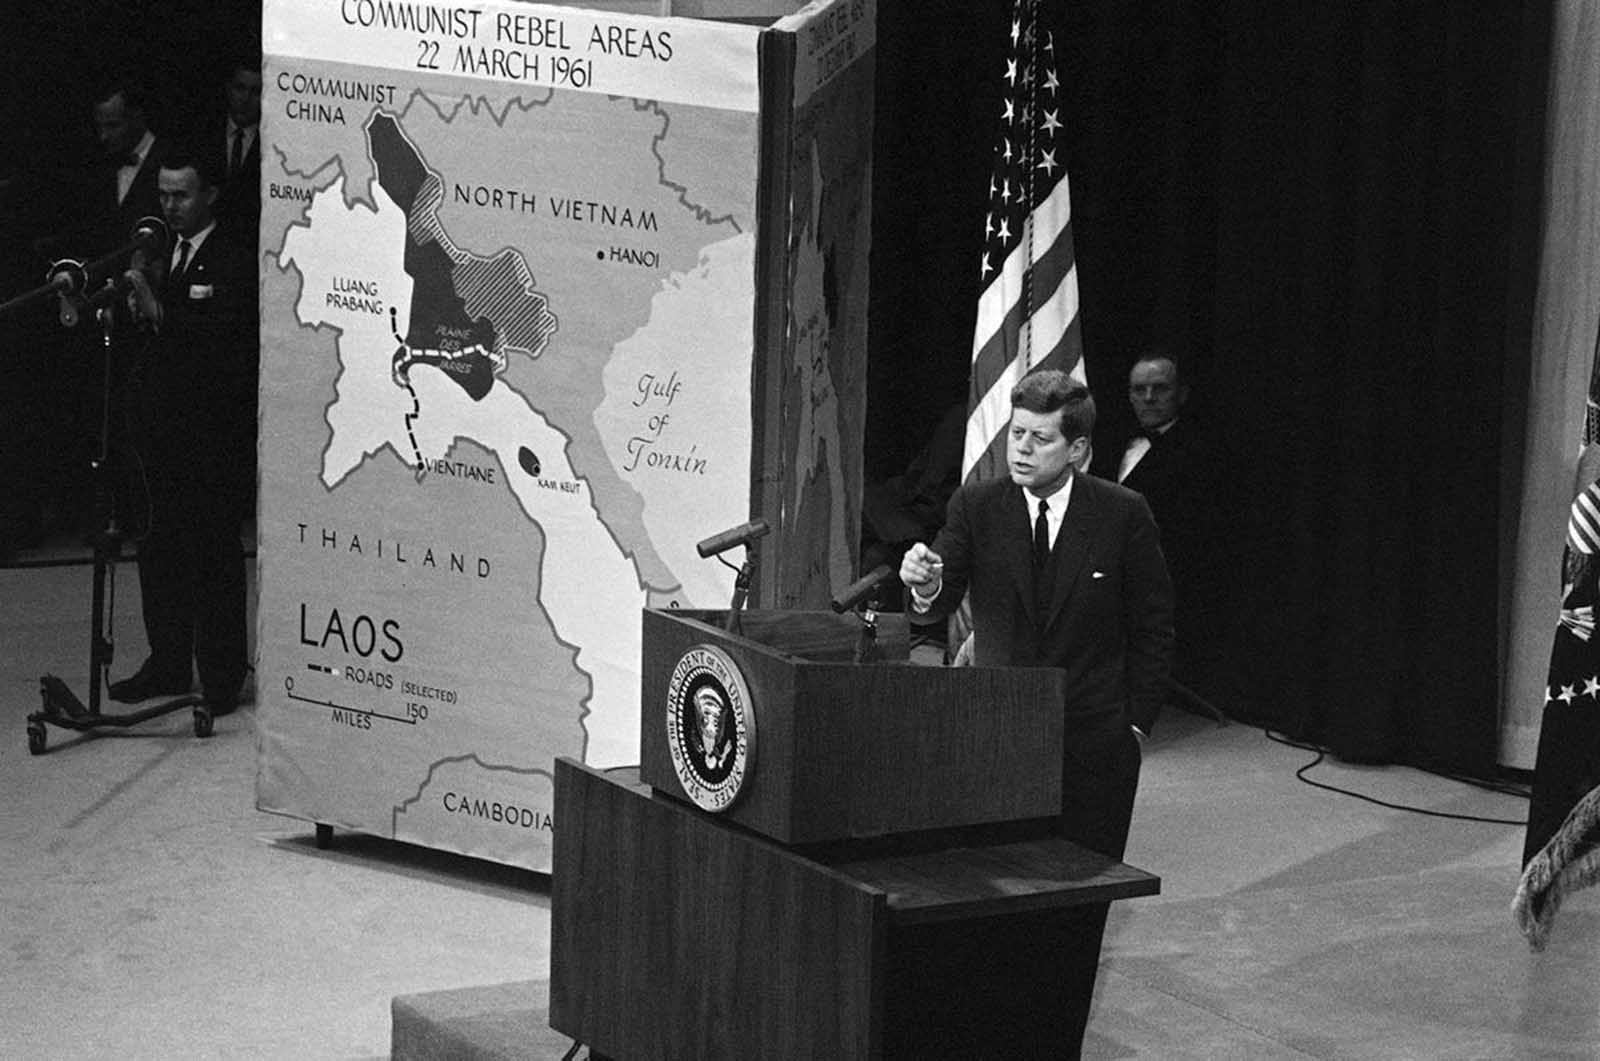 President Kennedy speaks to reporters at a nationally televised news conference in the State Department auditorium, on March 23, 1961. The Chief Executive at the opening of the conference discussed the Laos situation and used three different maps, picturing how pro-communist rebels have gained ground in the last seven months in Laos. The map at left was used by Kennedy to Show communist rebel areas as of March 22 which, he said, are indicated by the dark and shaded portions